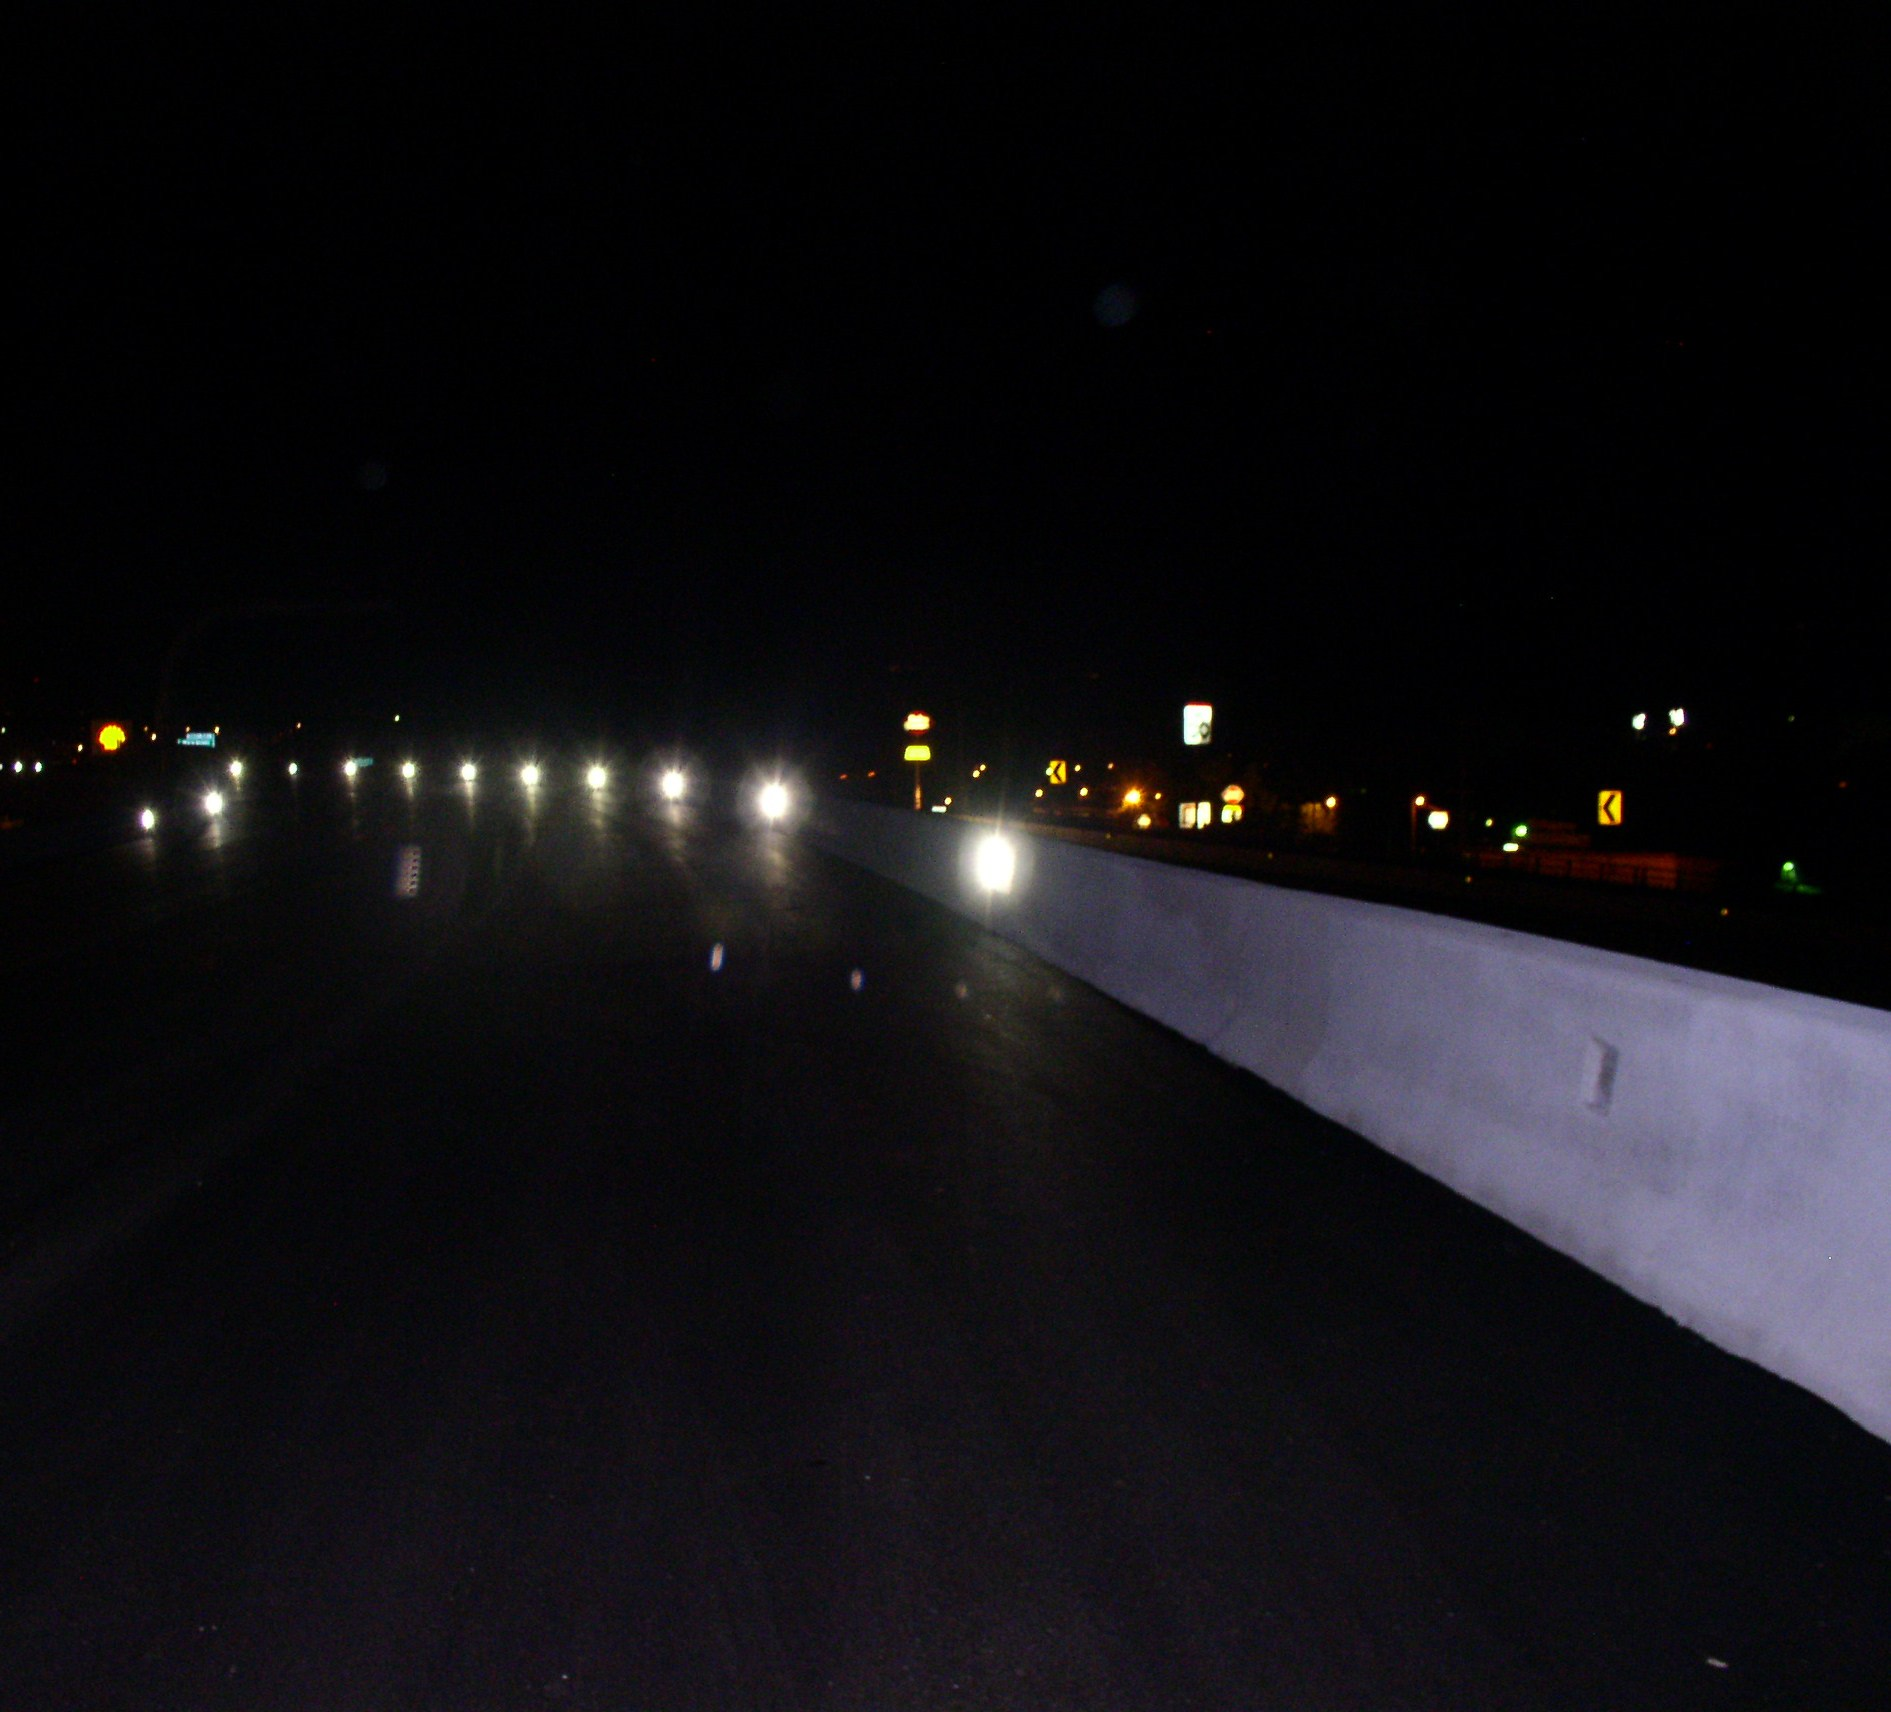 Highway - night research photo detail image